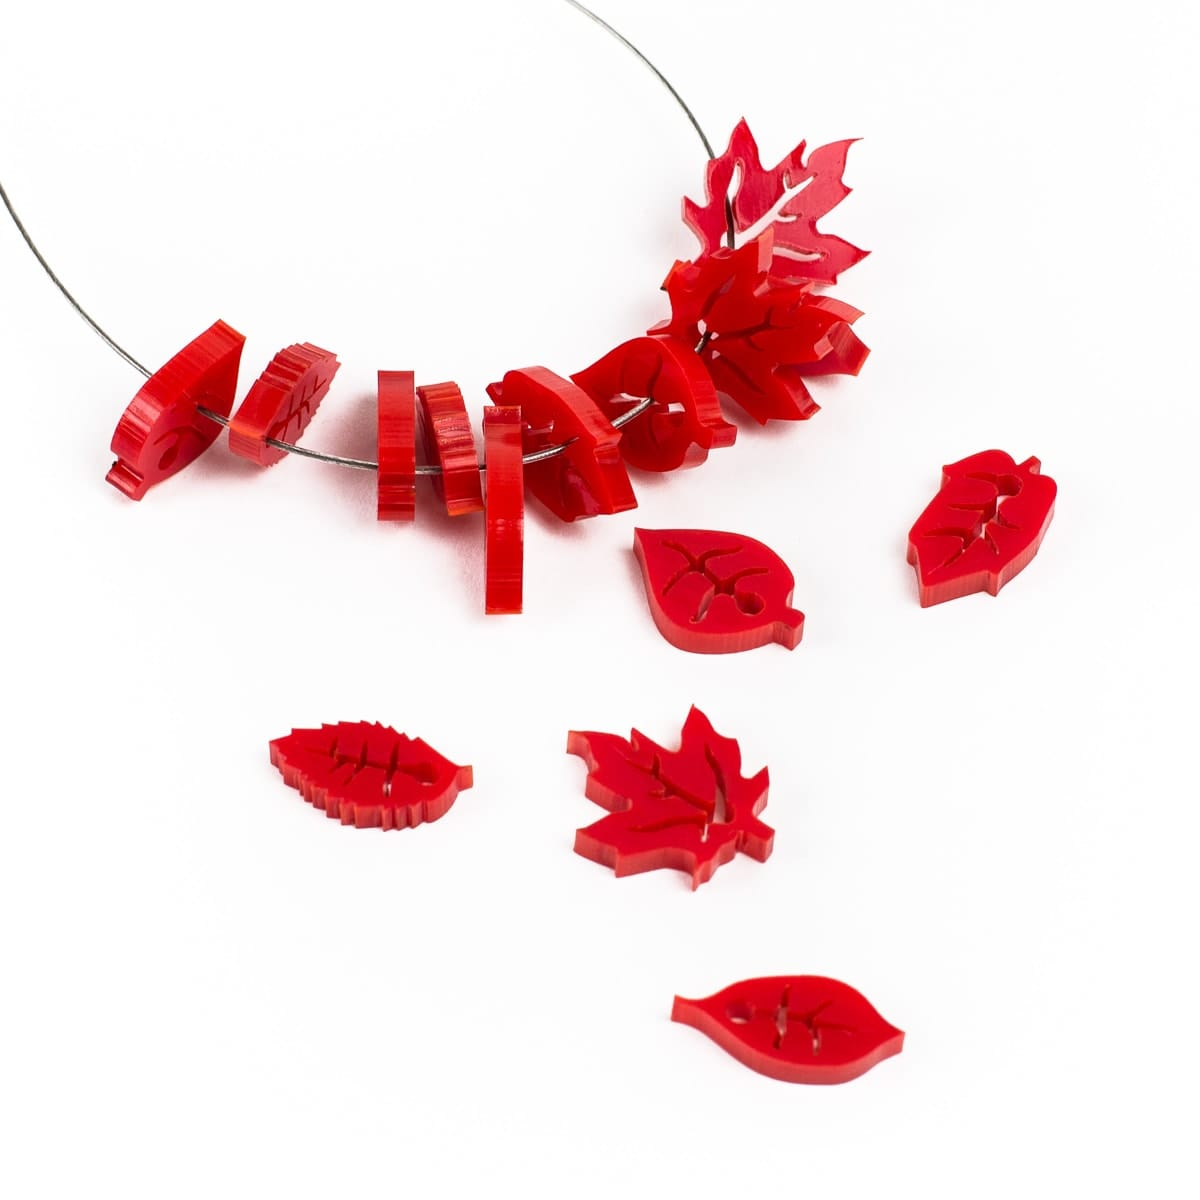 Red Acrylic example product.